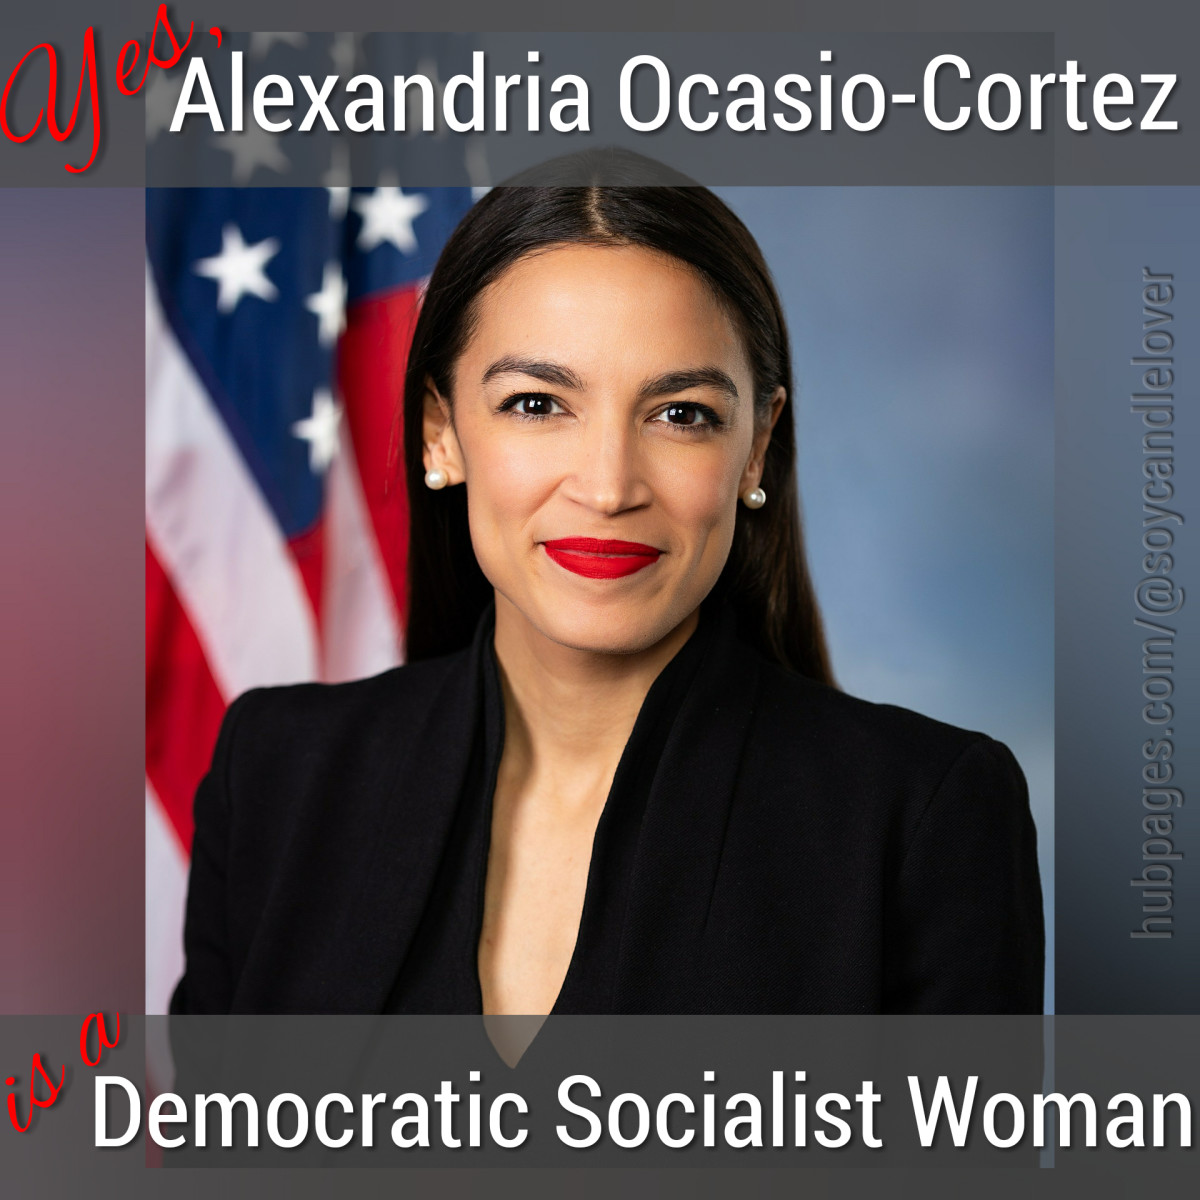 Yes, Alexandria Ocasio-Cortez Is a Wild Democratic Socialist Woman